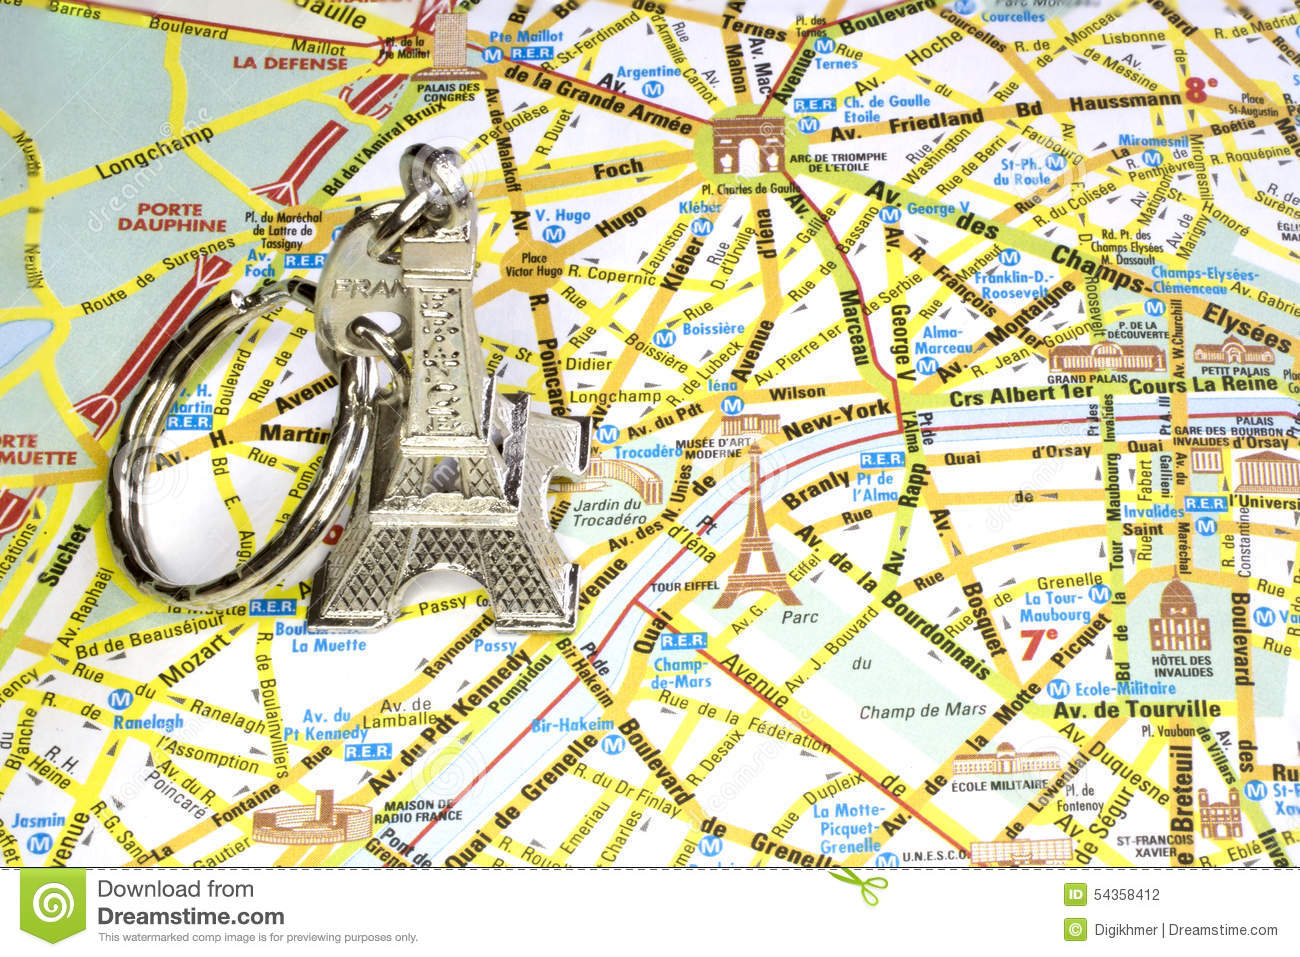 Paris Monuments Map Photo Image 54358412 – Map of Paris with Monuments